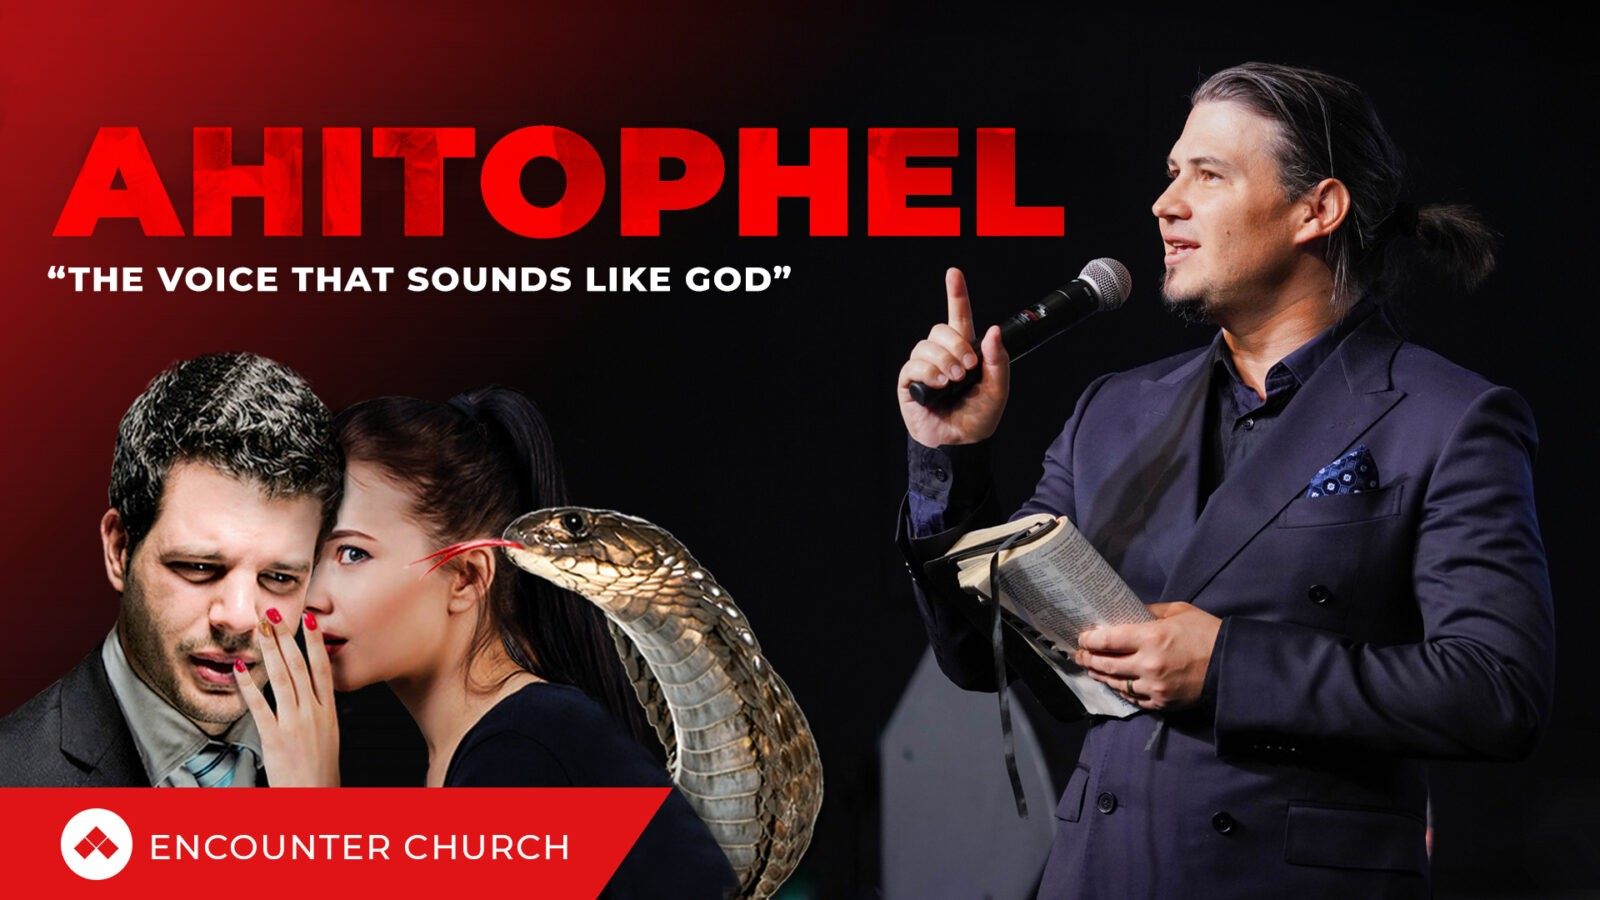 Ahitophel – The Voice that Sounds Like God